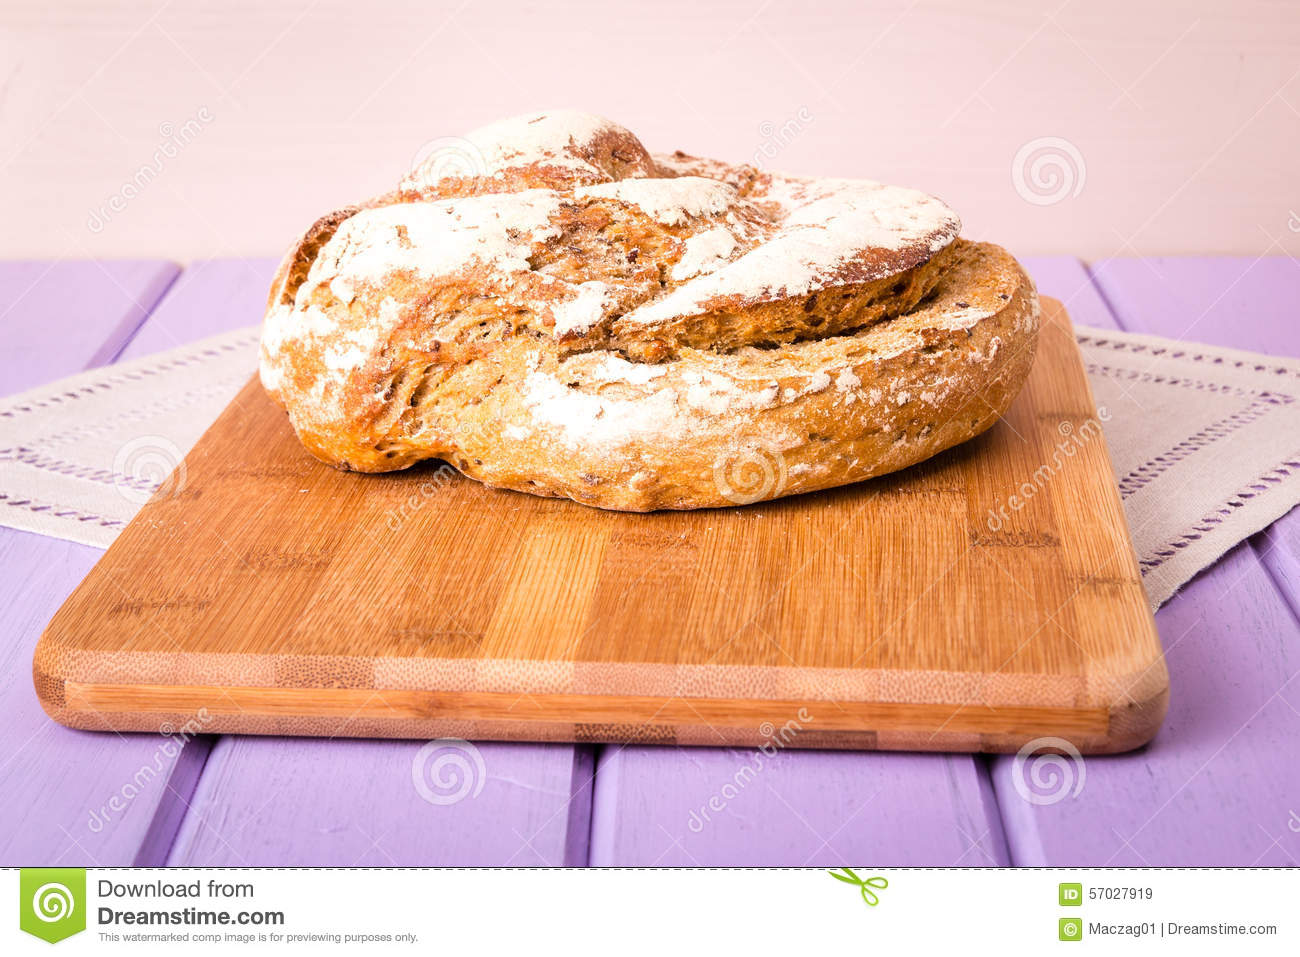 how to make homemade loaf bread